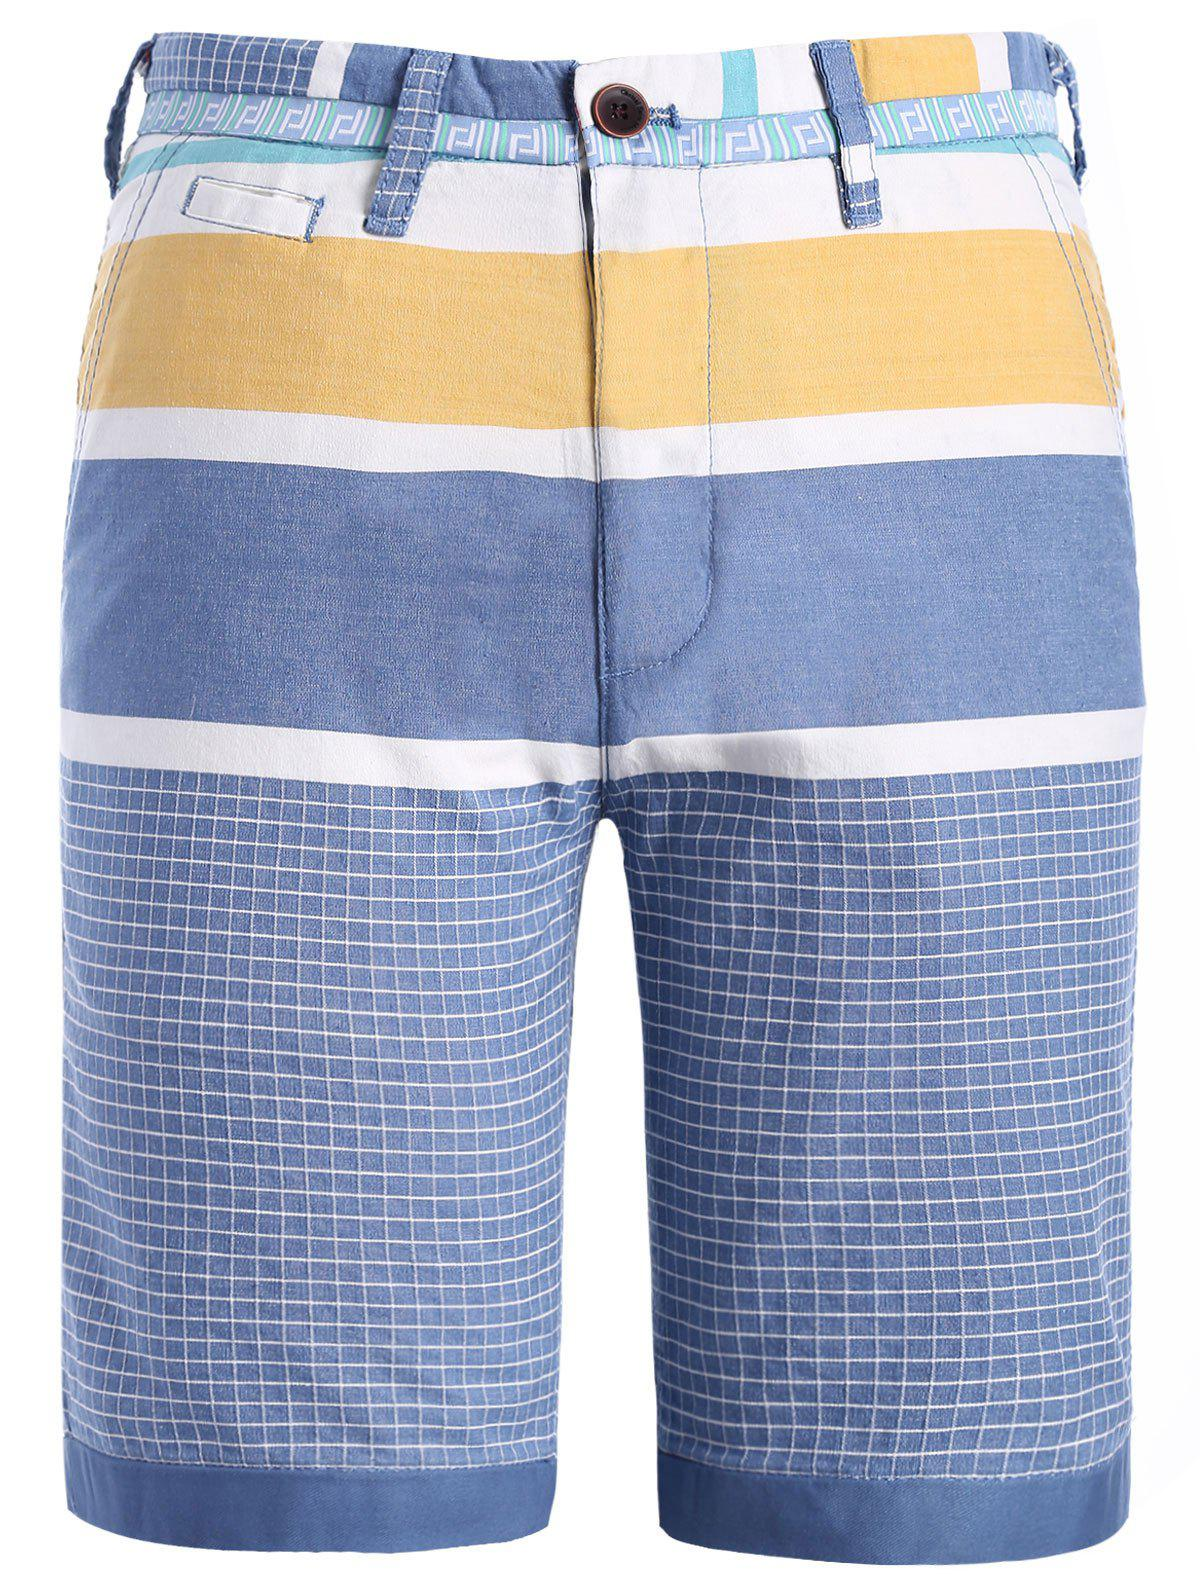 Fashion Men's Straight Leg Color Block Plaid Pattern Zipper Fly Shorts - YELLOW XL